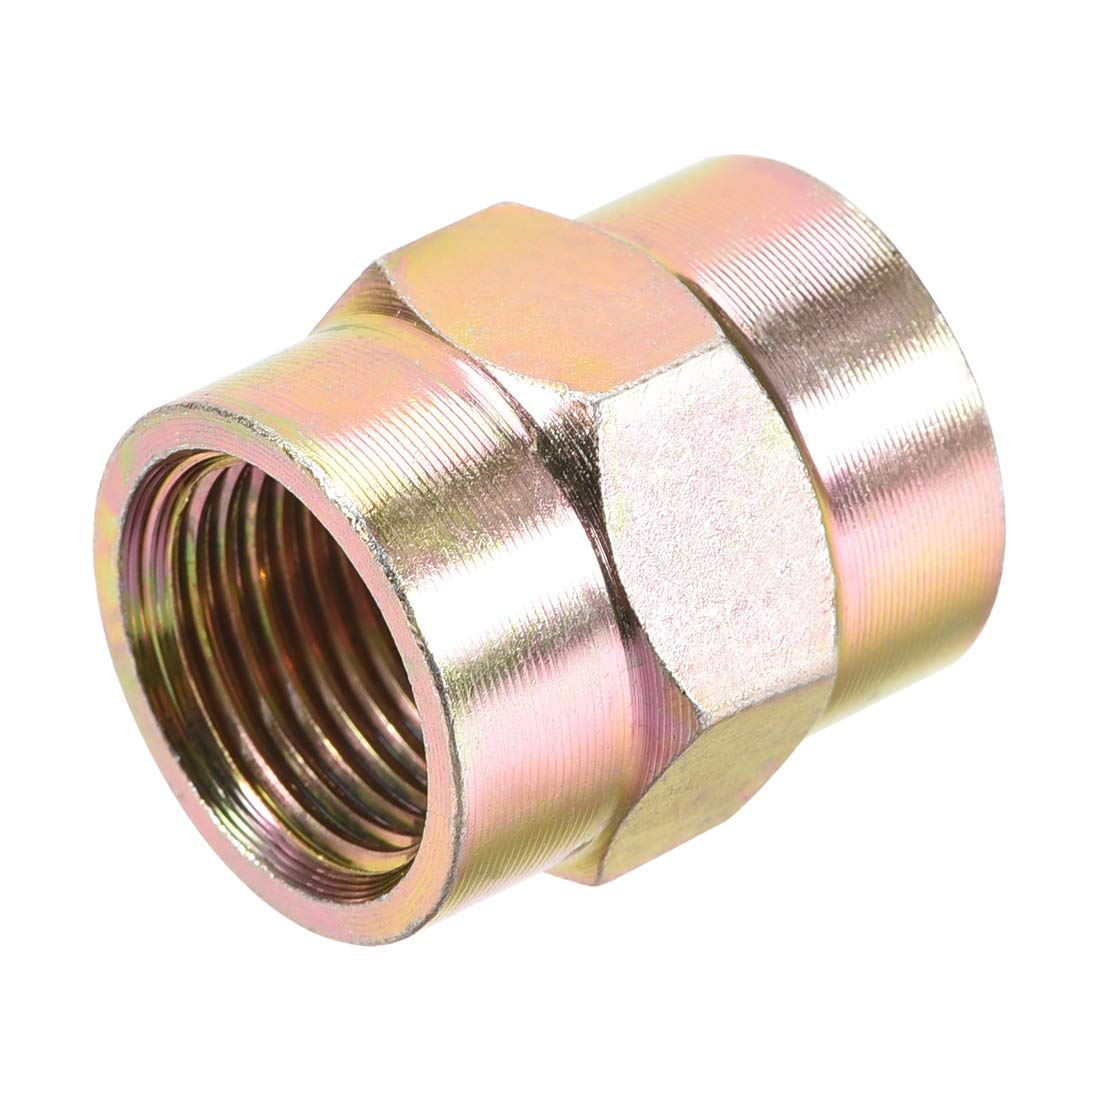 uxcell Pipe Fitting Connector Straight Hex Nipple Coupling 3//8 PT Female Thread Hydraulic Adapter 4pcs